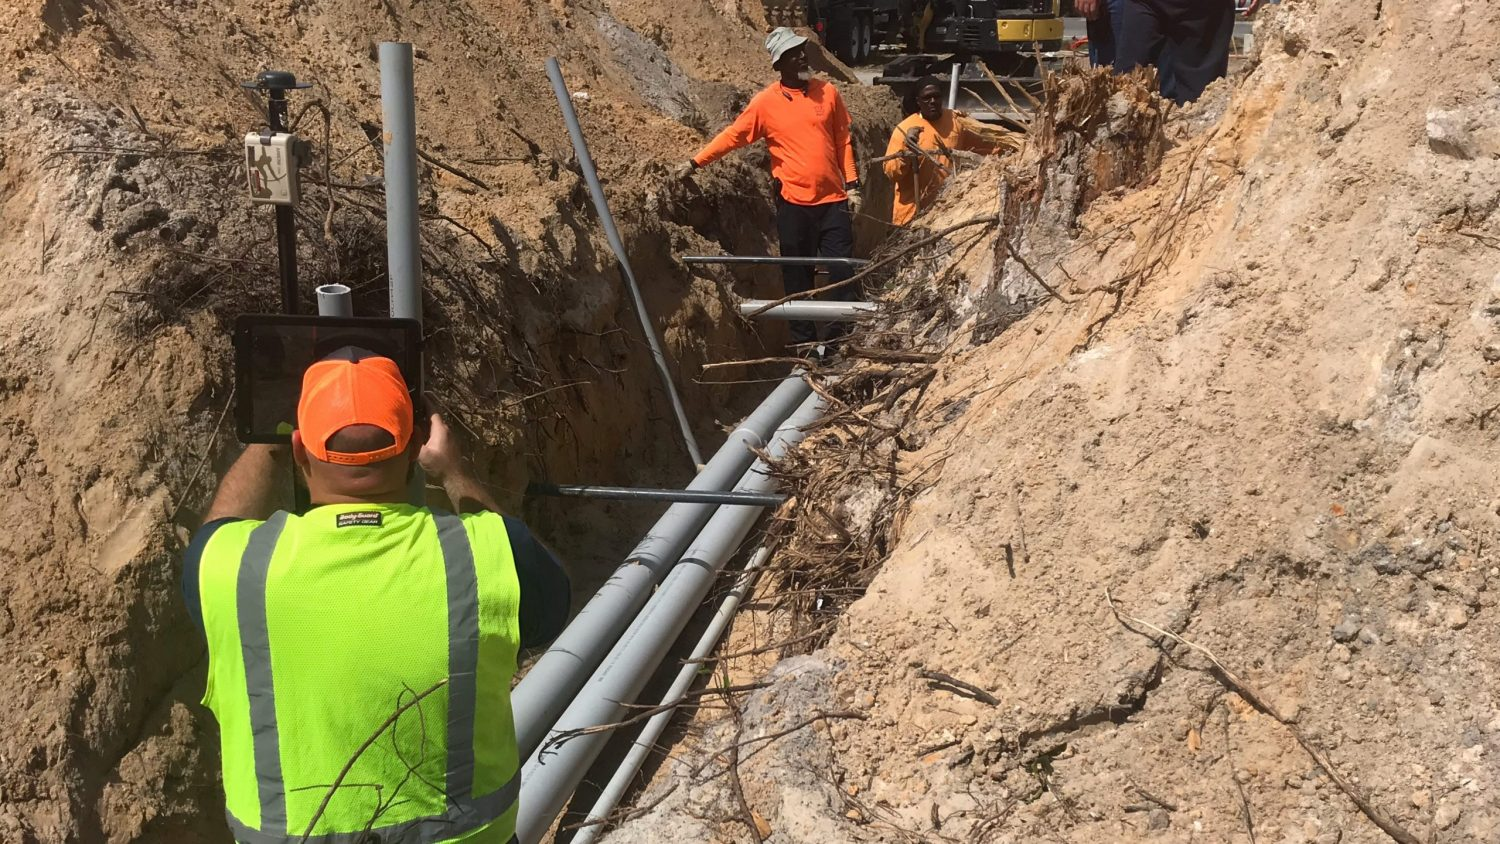 Utility Commission of New Smyrna Beach crew map assets in a trench in Florida